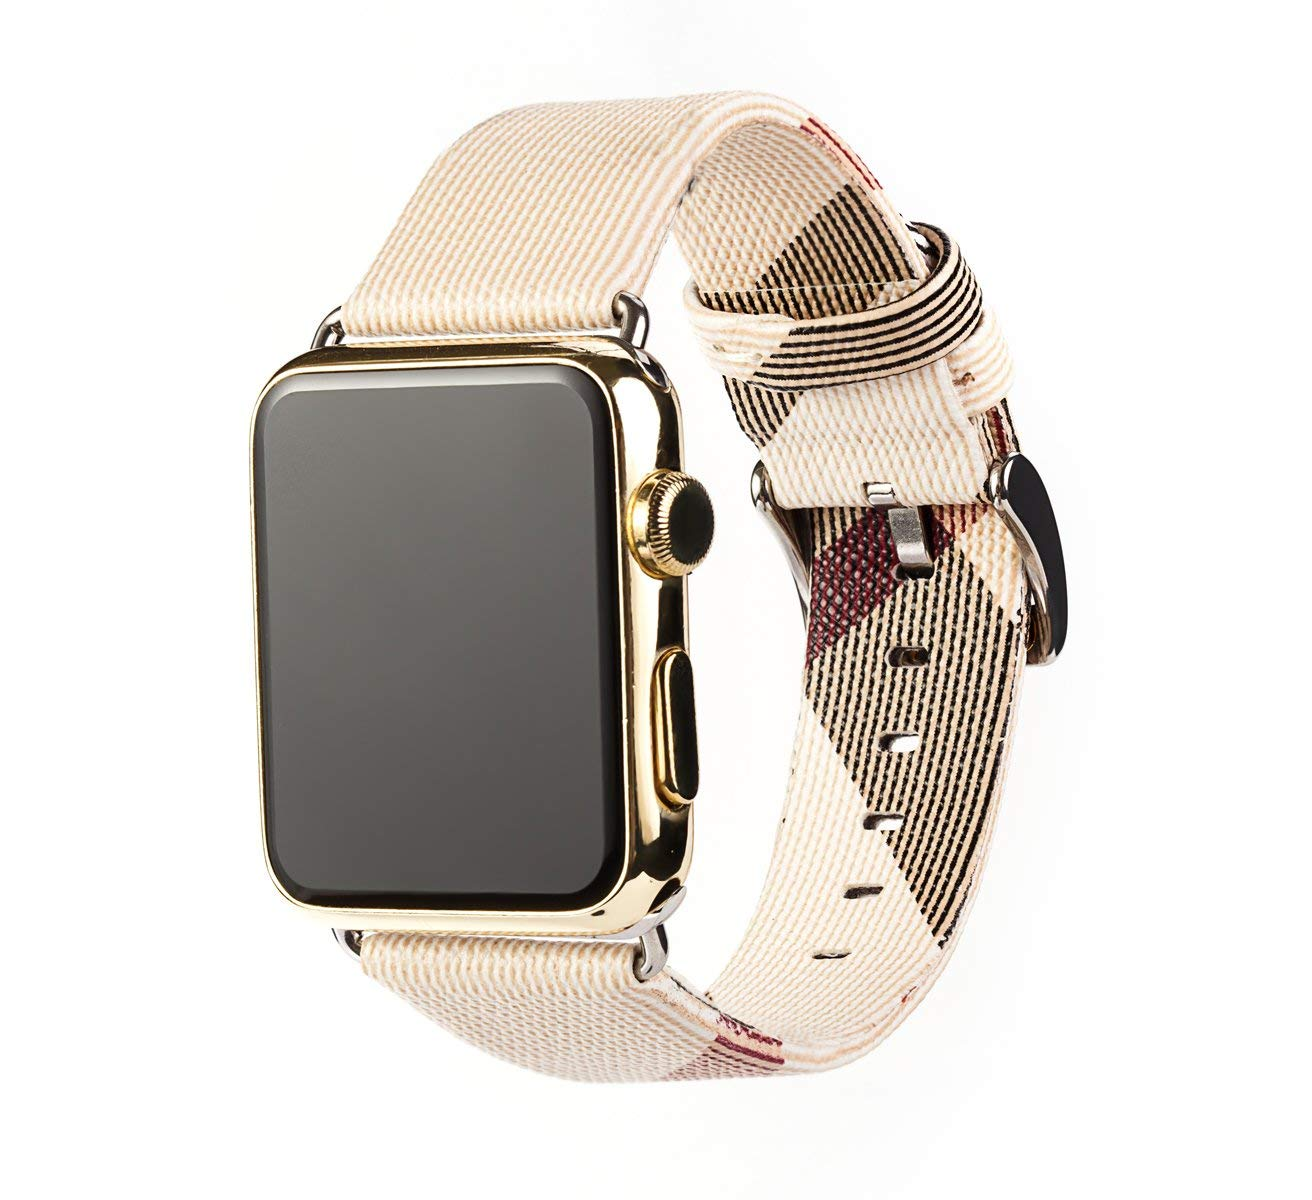 Correa para Apple Watch Series 4 40mm Cuero, Myada Correa Apple Watch Series 3 38mm Piel,